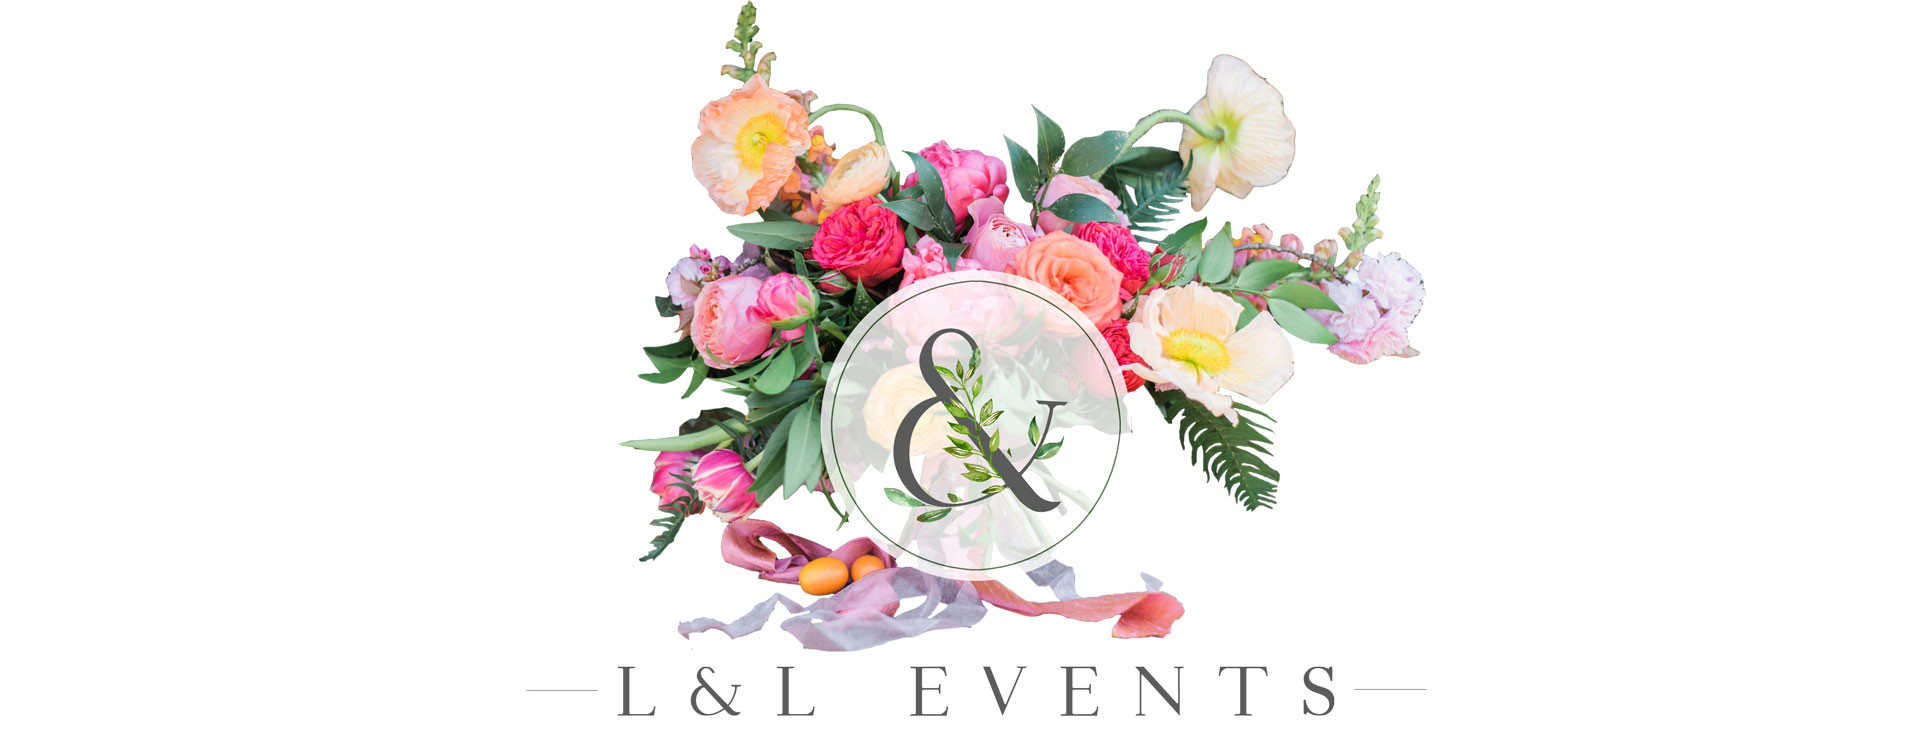 Welcome to L&L Events!